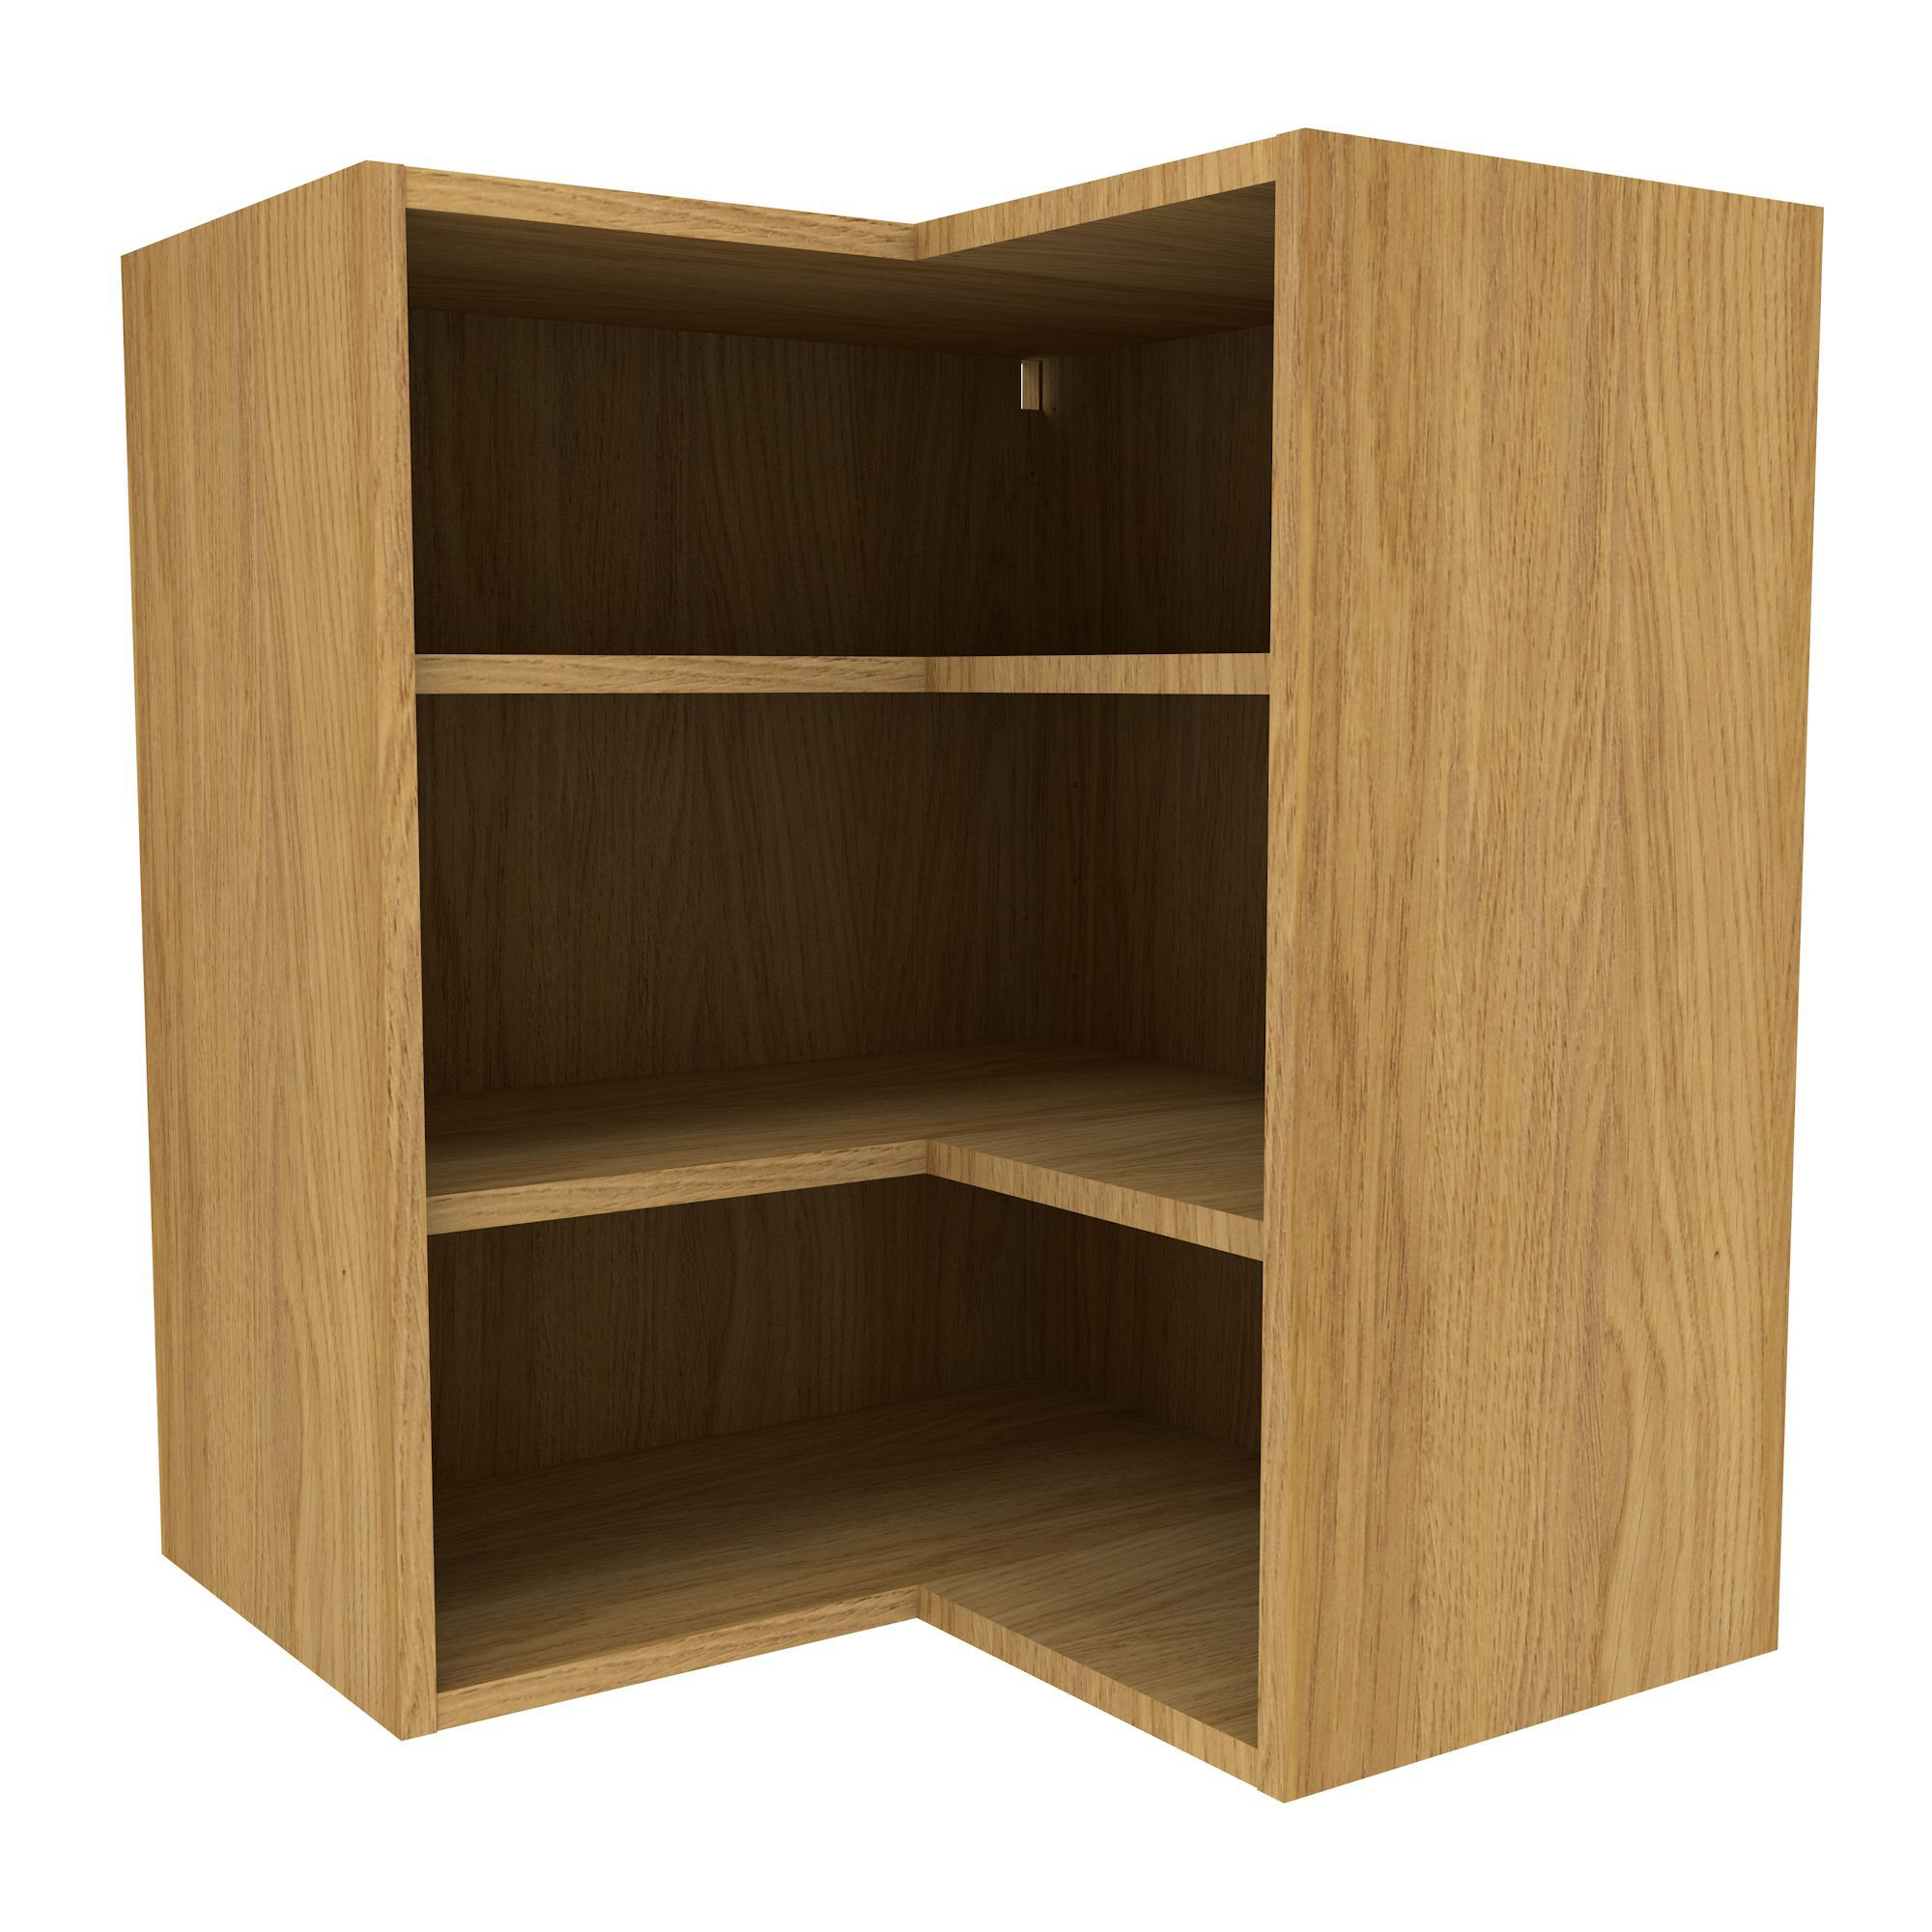 Cooke lewis oak effect belfast base cabinet w 600mm for Kitchen cabinets 600mm